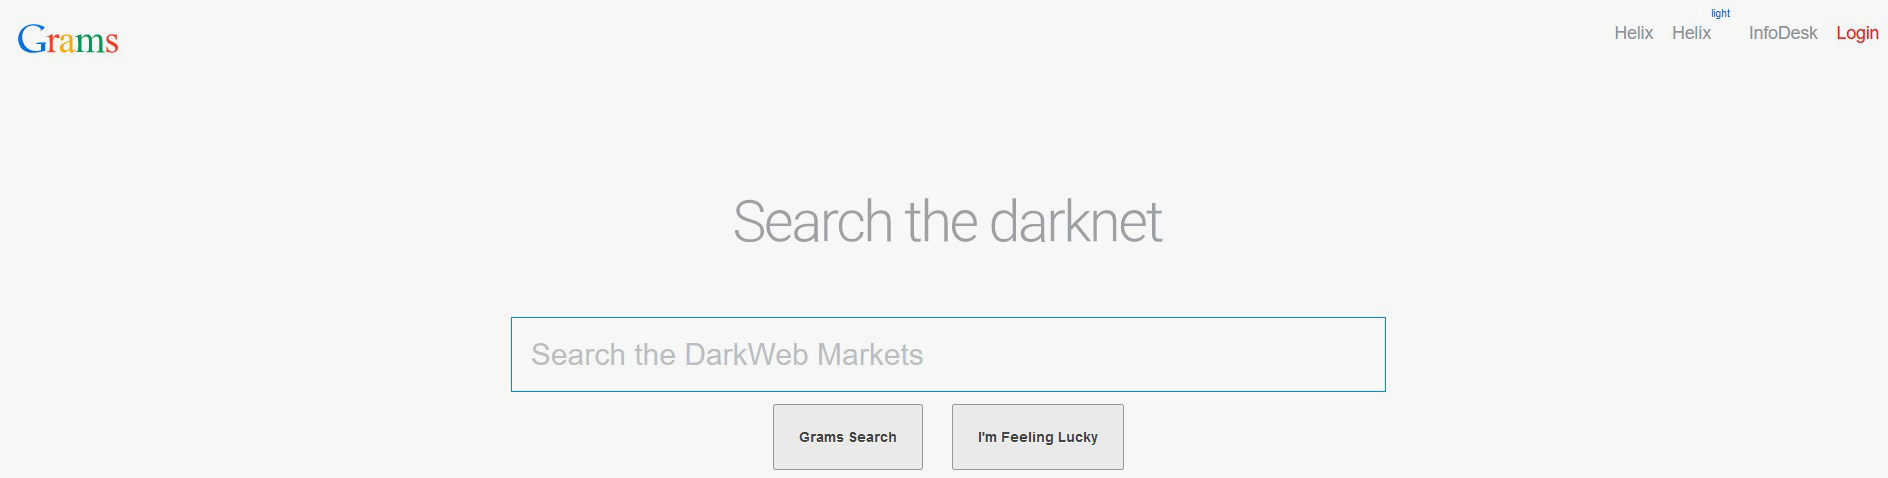 Darknet grams гирда browsers like tor browser gydra